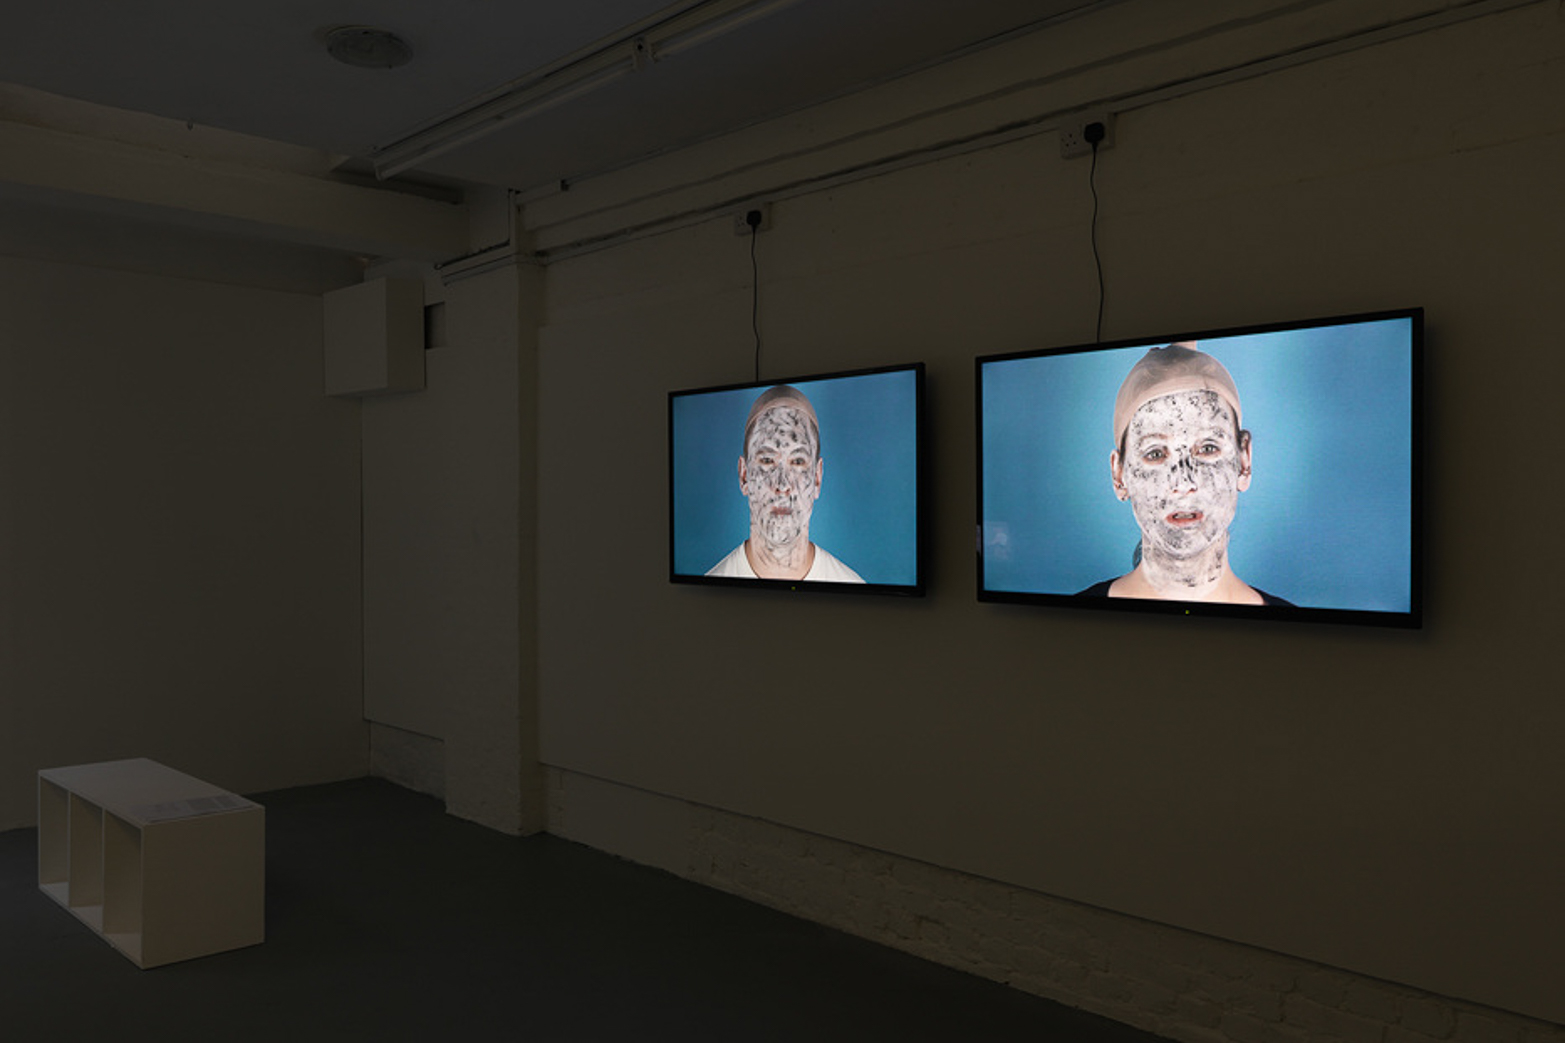 Anja Kirschner and David Panos, Uncanny Valley. Installation view. Courtesy of Hollybush Gardens and Tenderpixel.